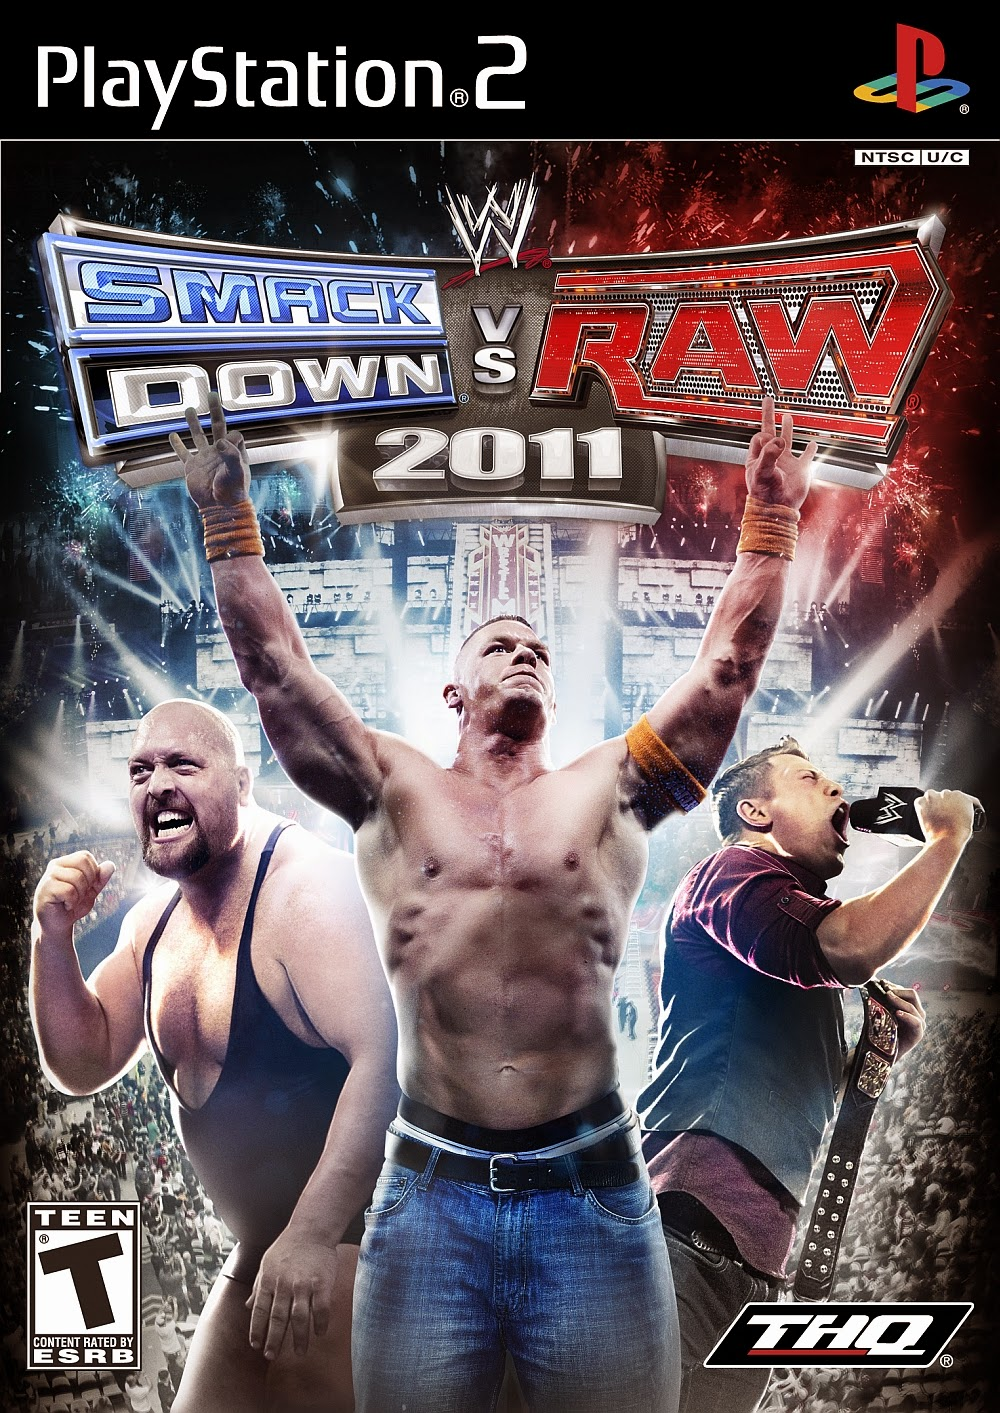 wwe smack down vs raw 2011 Ps2 Iso www.juegosparaplaystation.com